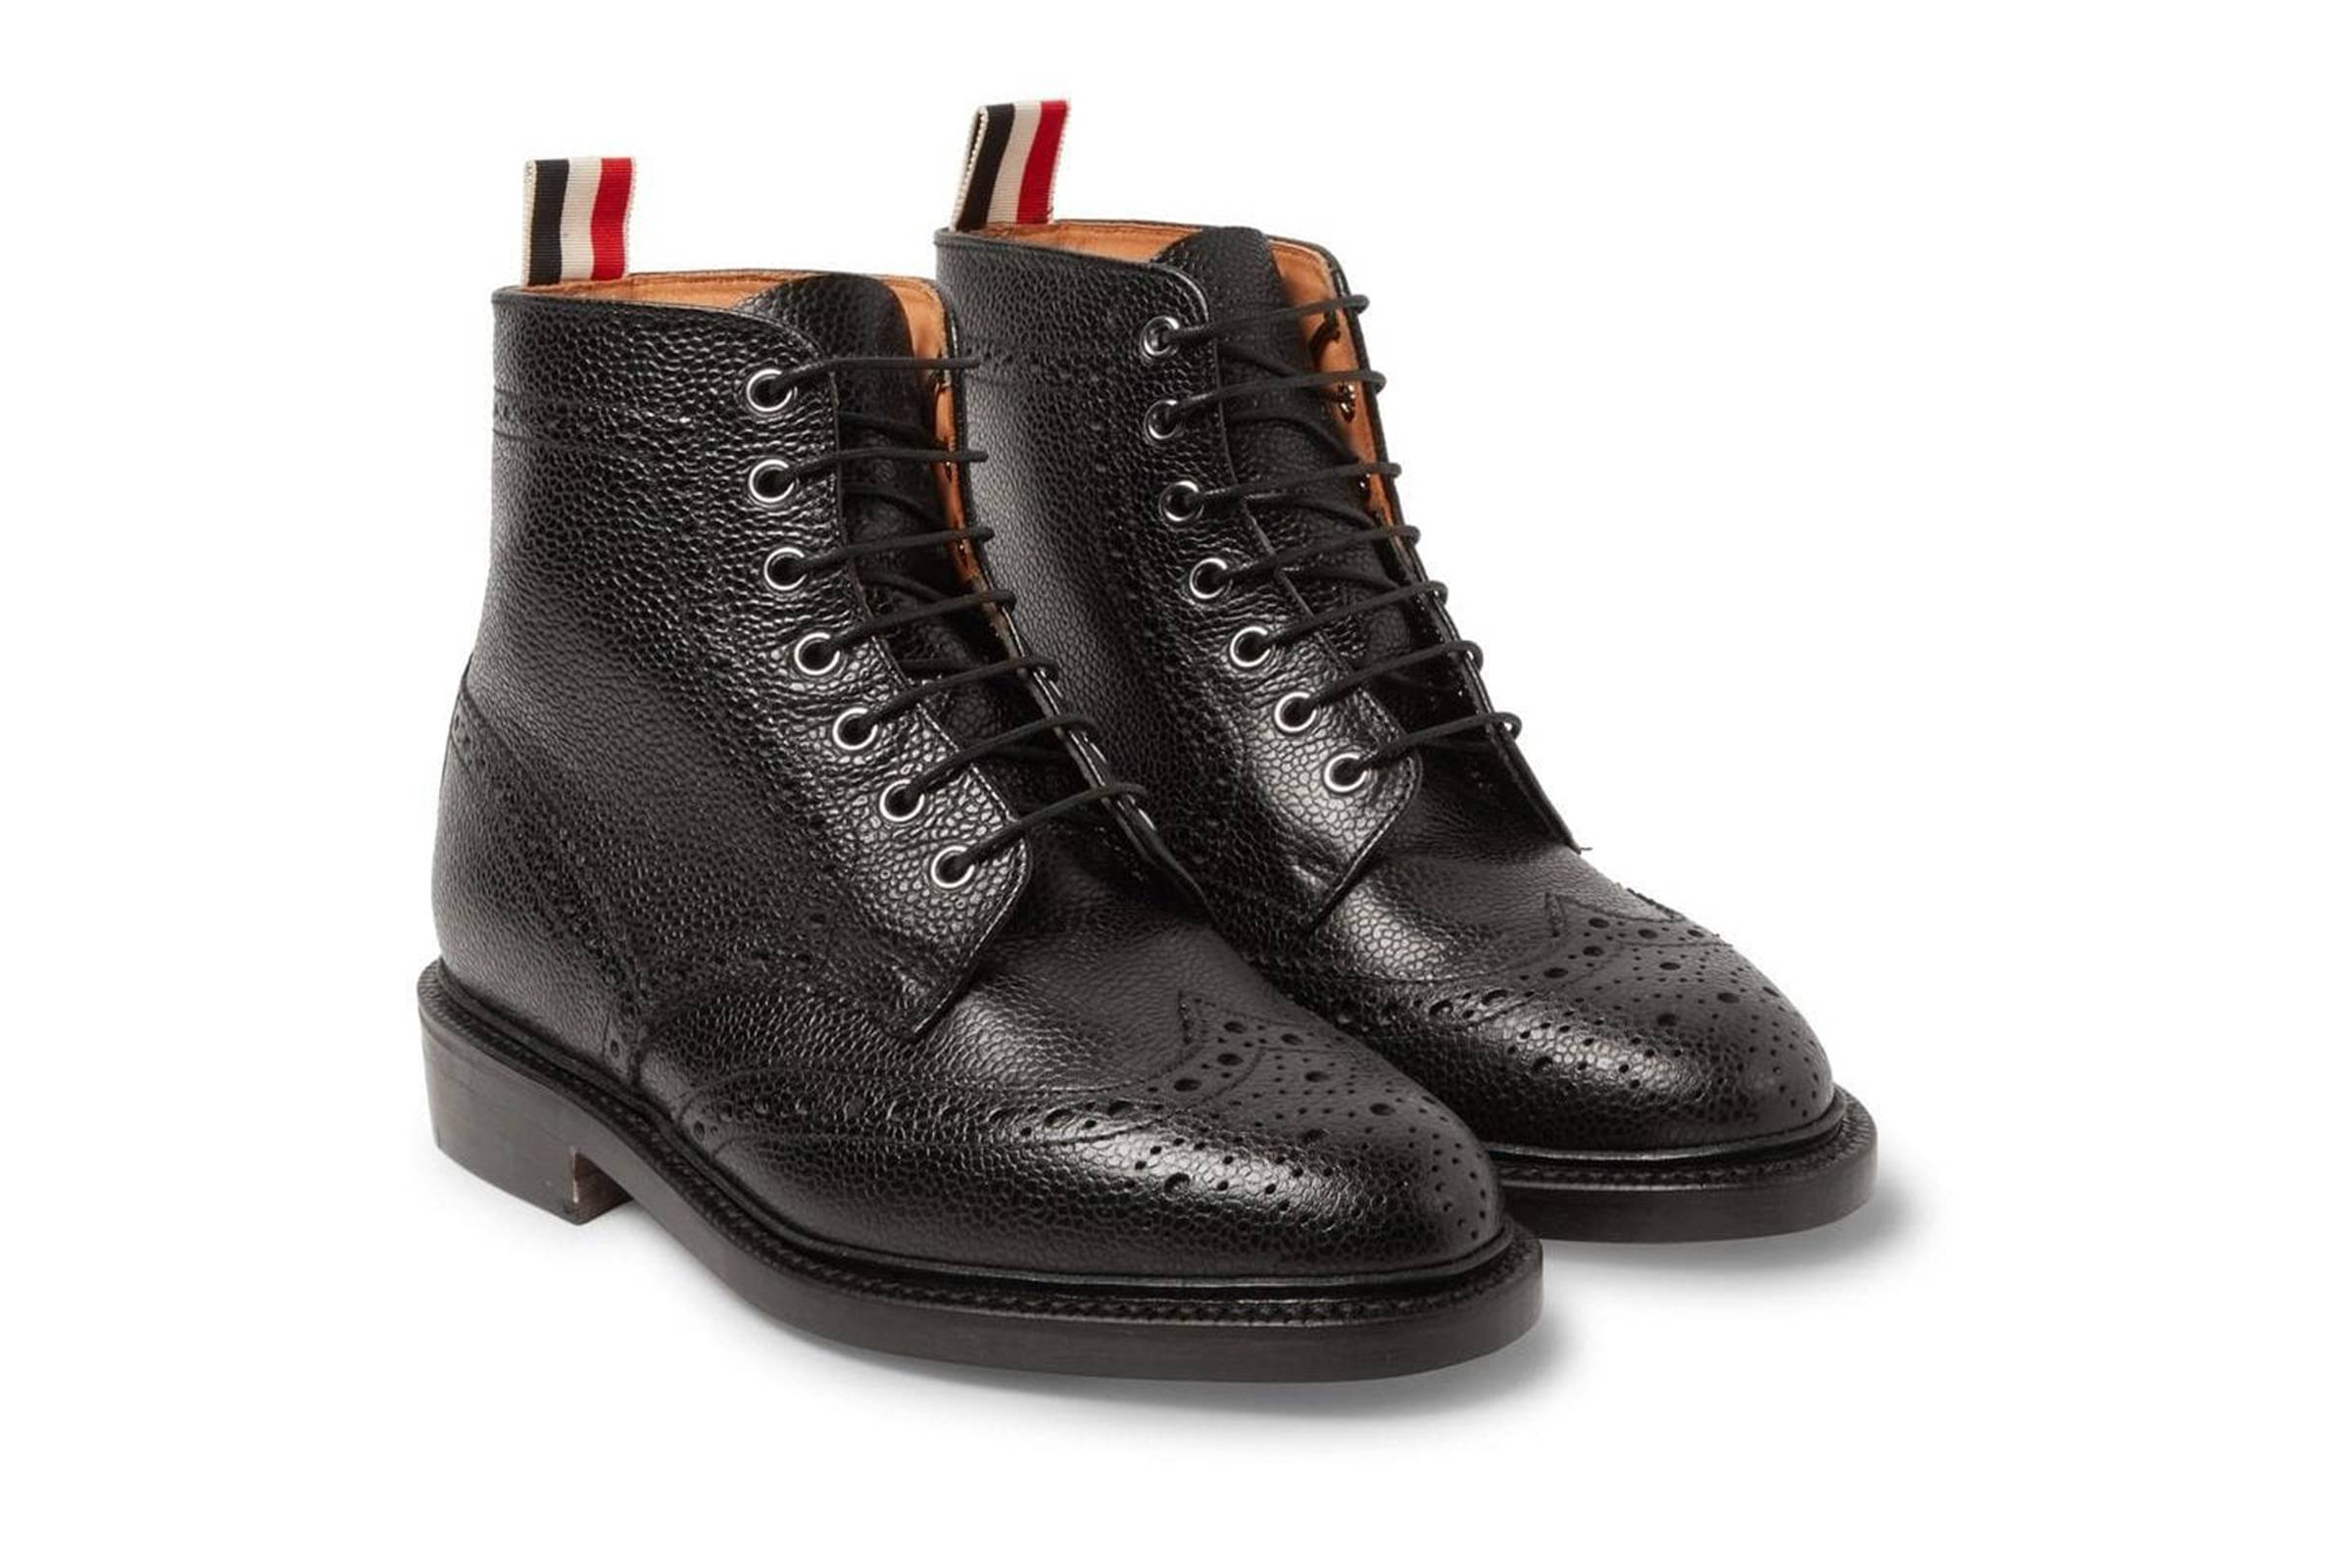 Thom Browne Brogue Boots